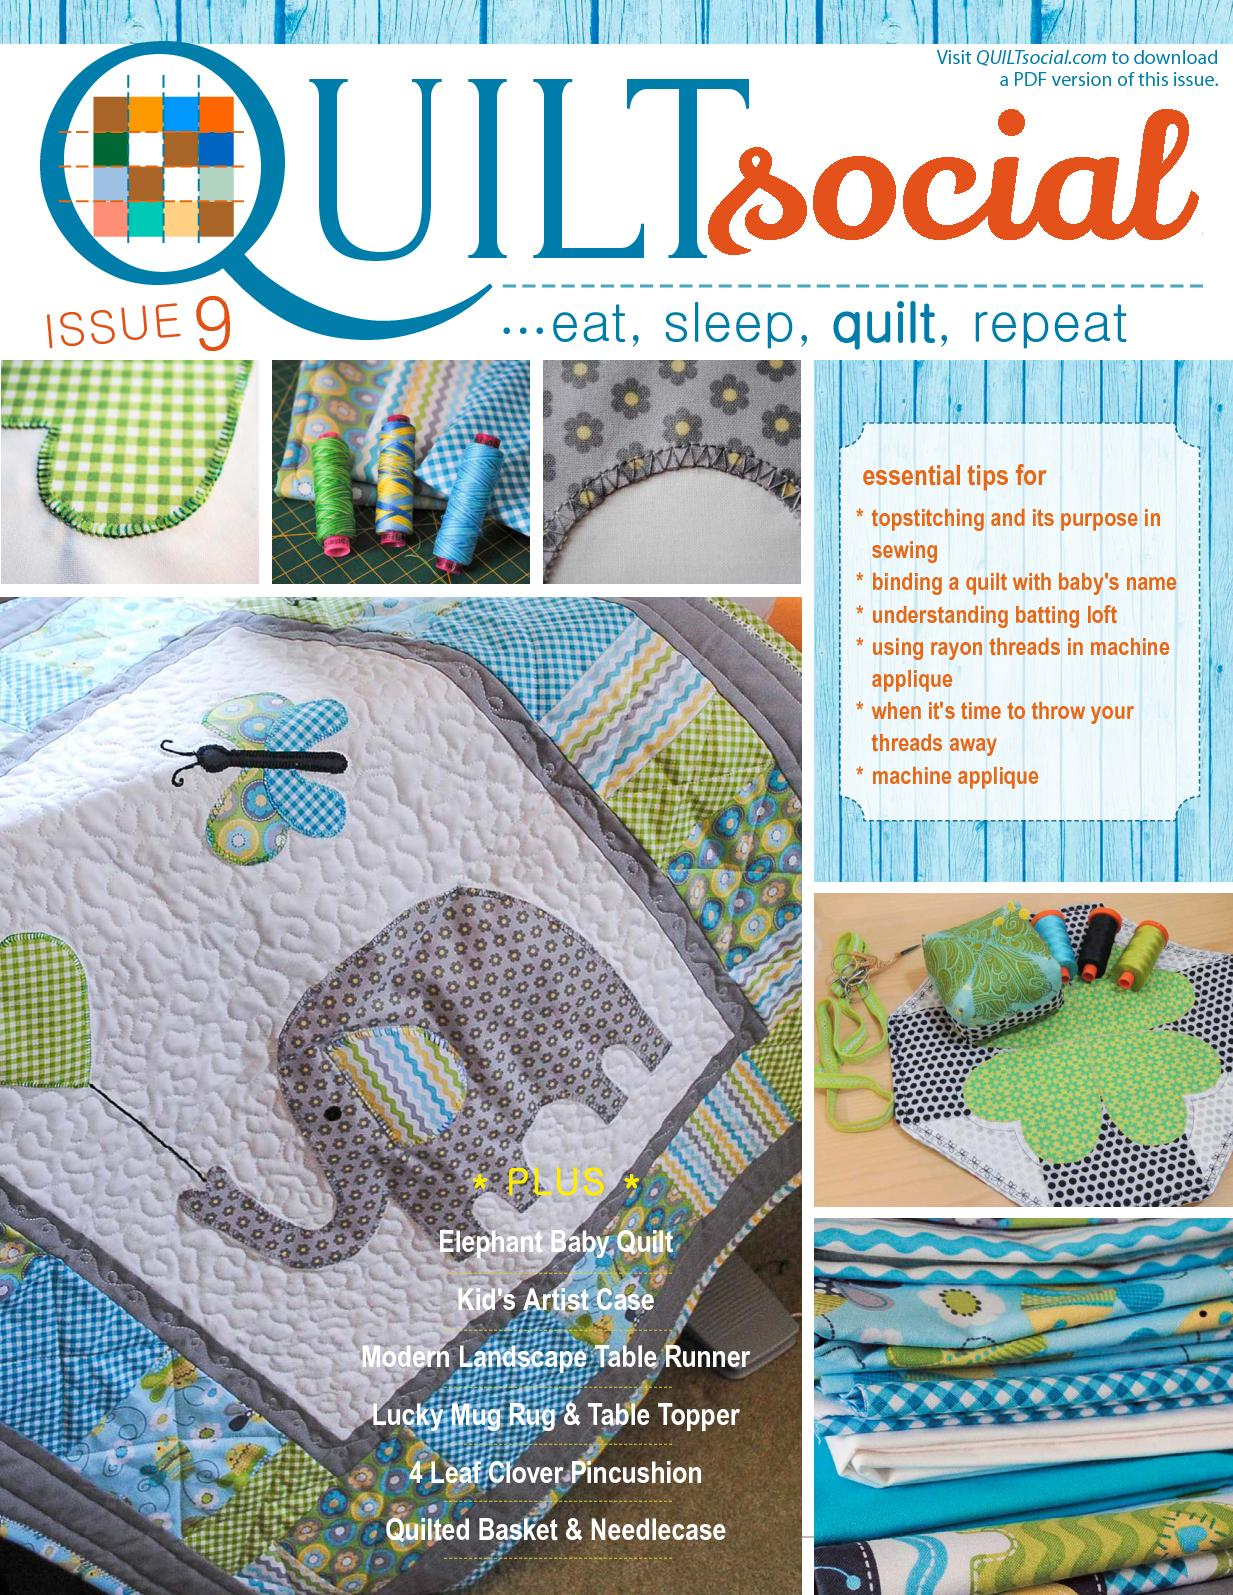 Quilters Dream Cotton White Select Loft Baby Bolt Crafting Quilt Batting